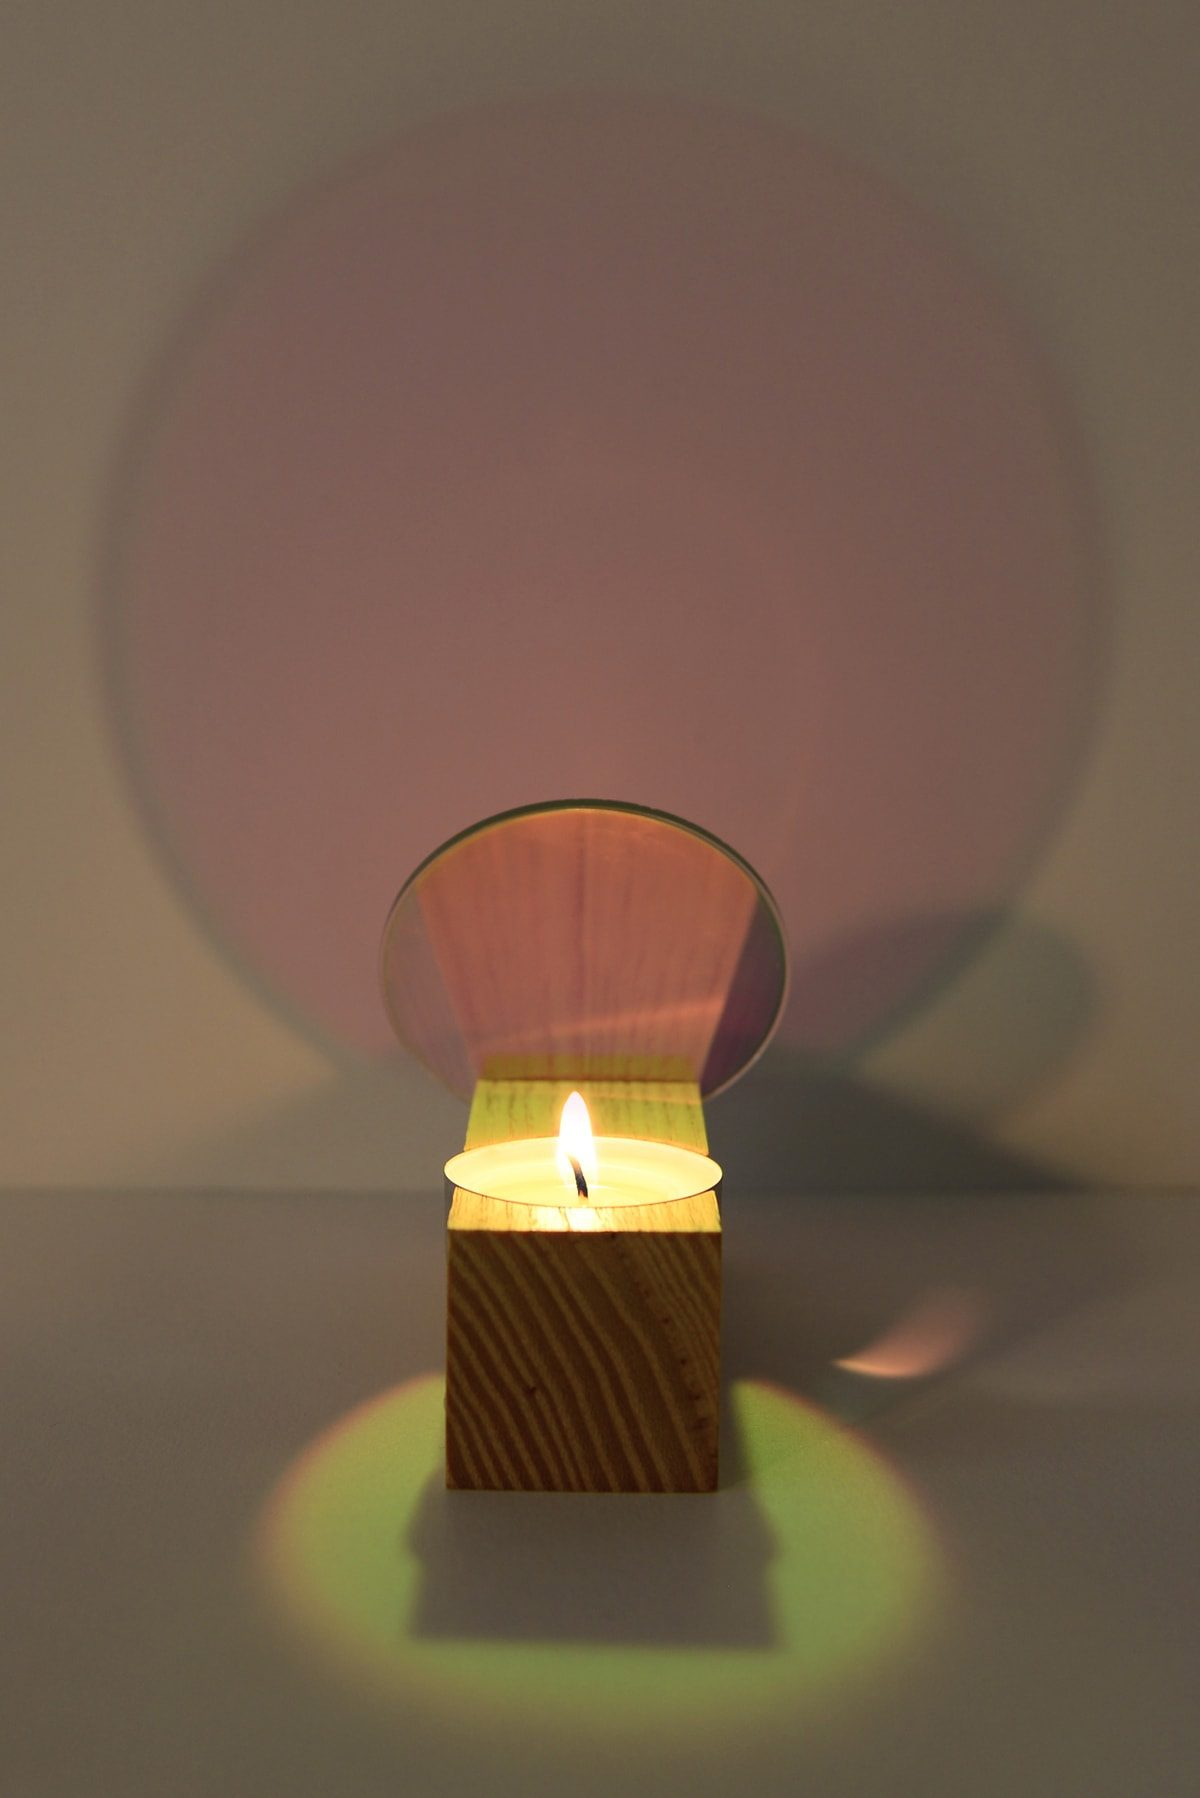 iridescent_filter-effect-tealight_holder-interior_reflections-stvd-min